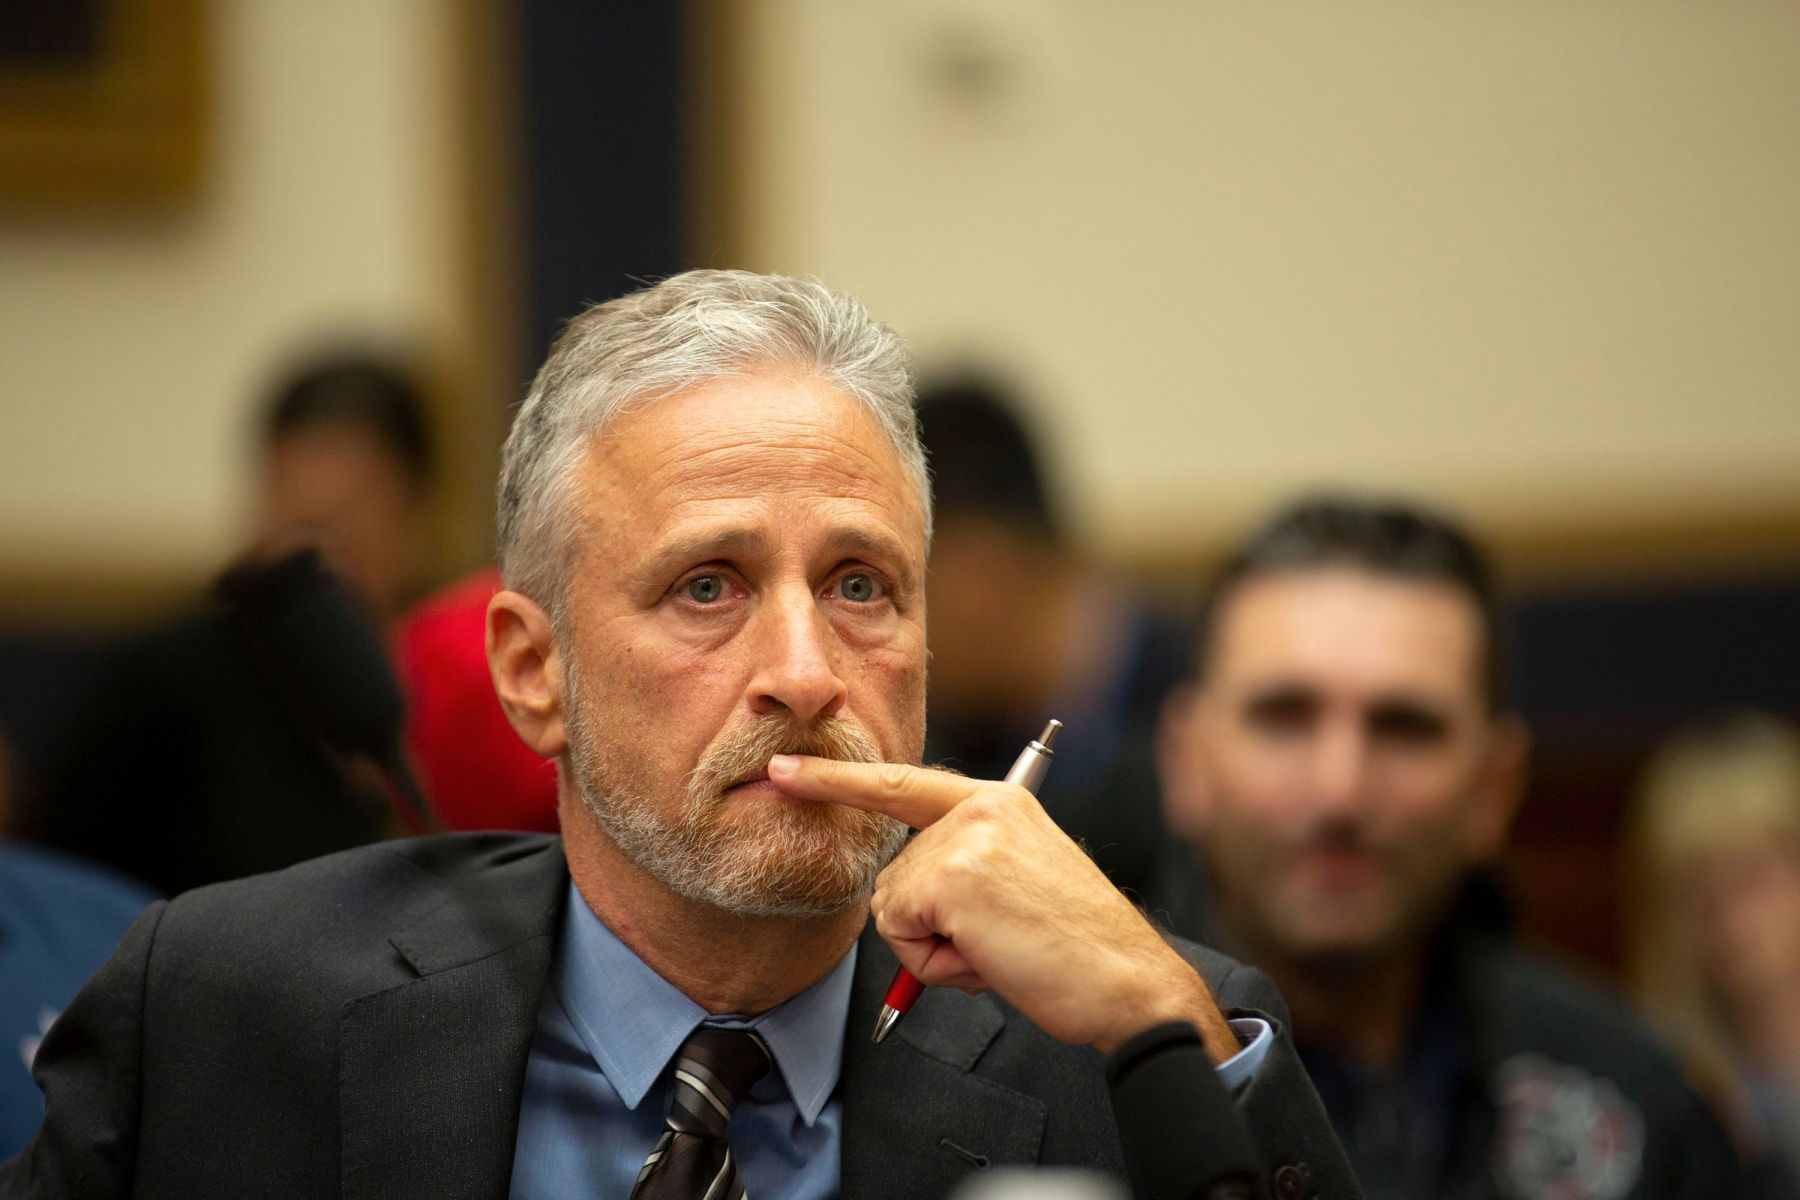 Jon Stewart gets emotional at a hearing on the 9-11 Victims fund before the Judiciary subcommittee9/11 Victims Fund Hearing, Washington DC, USA - 11 Jun 2019